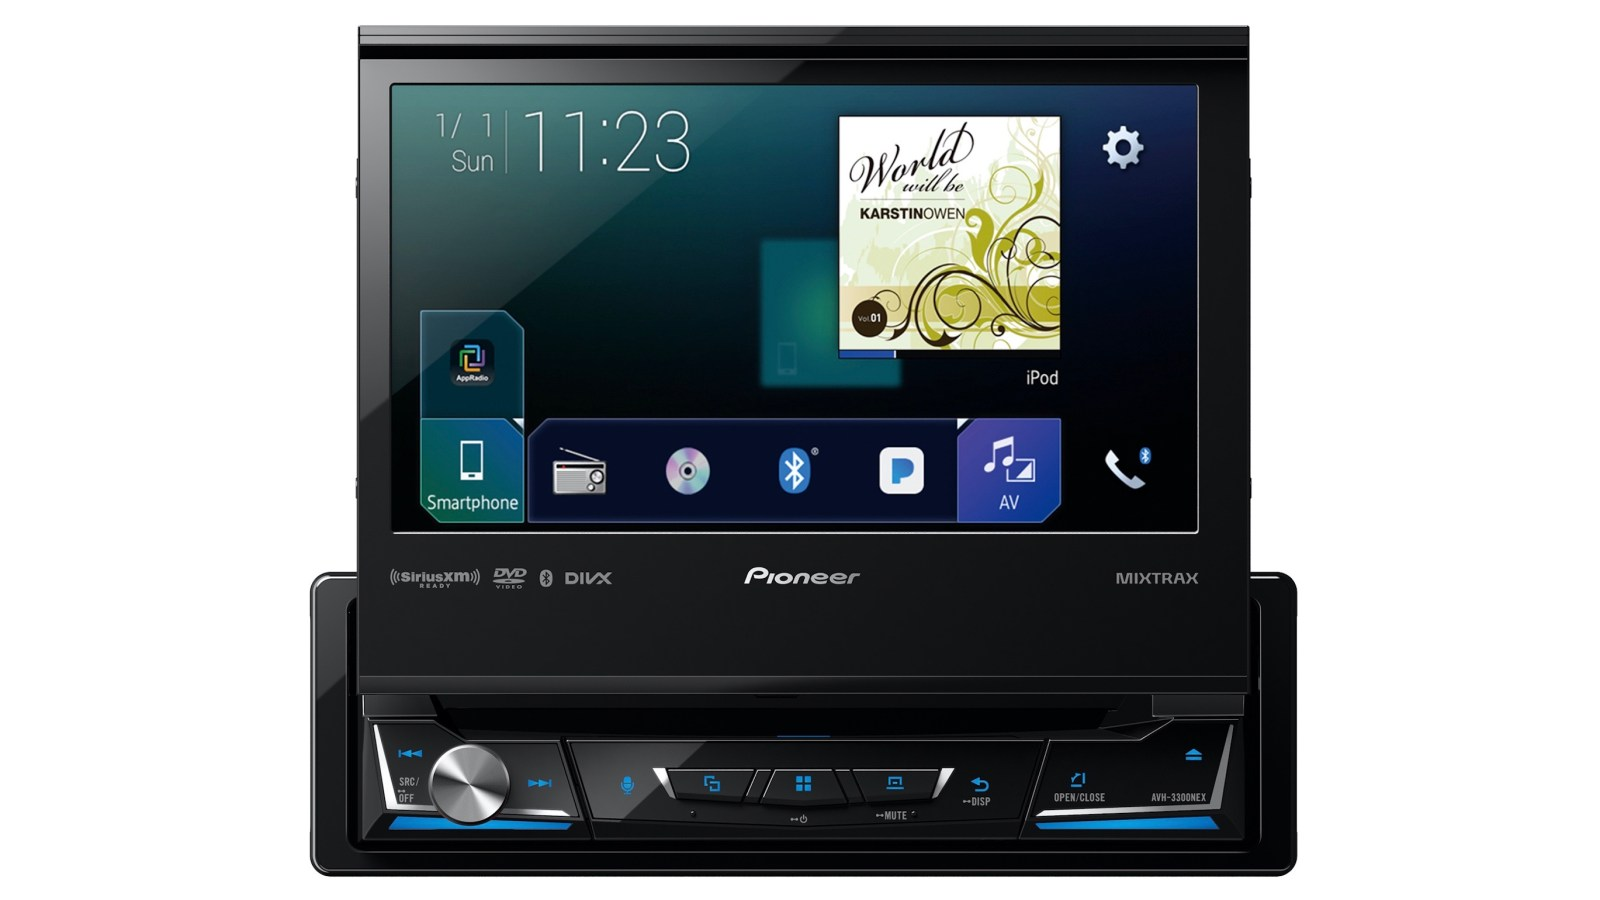 Pioneer launching 5 new aftermarket CarPlay receivers including 7-inch single-DIN model